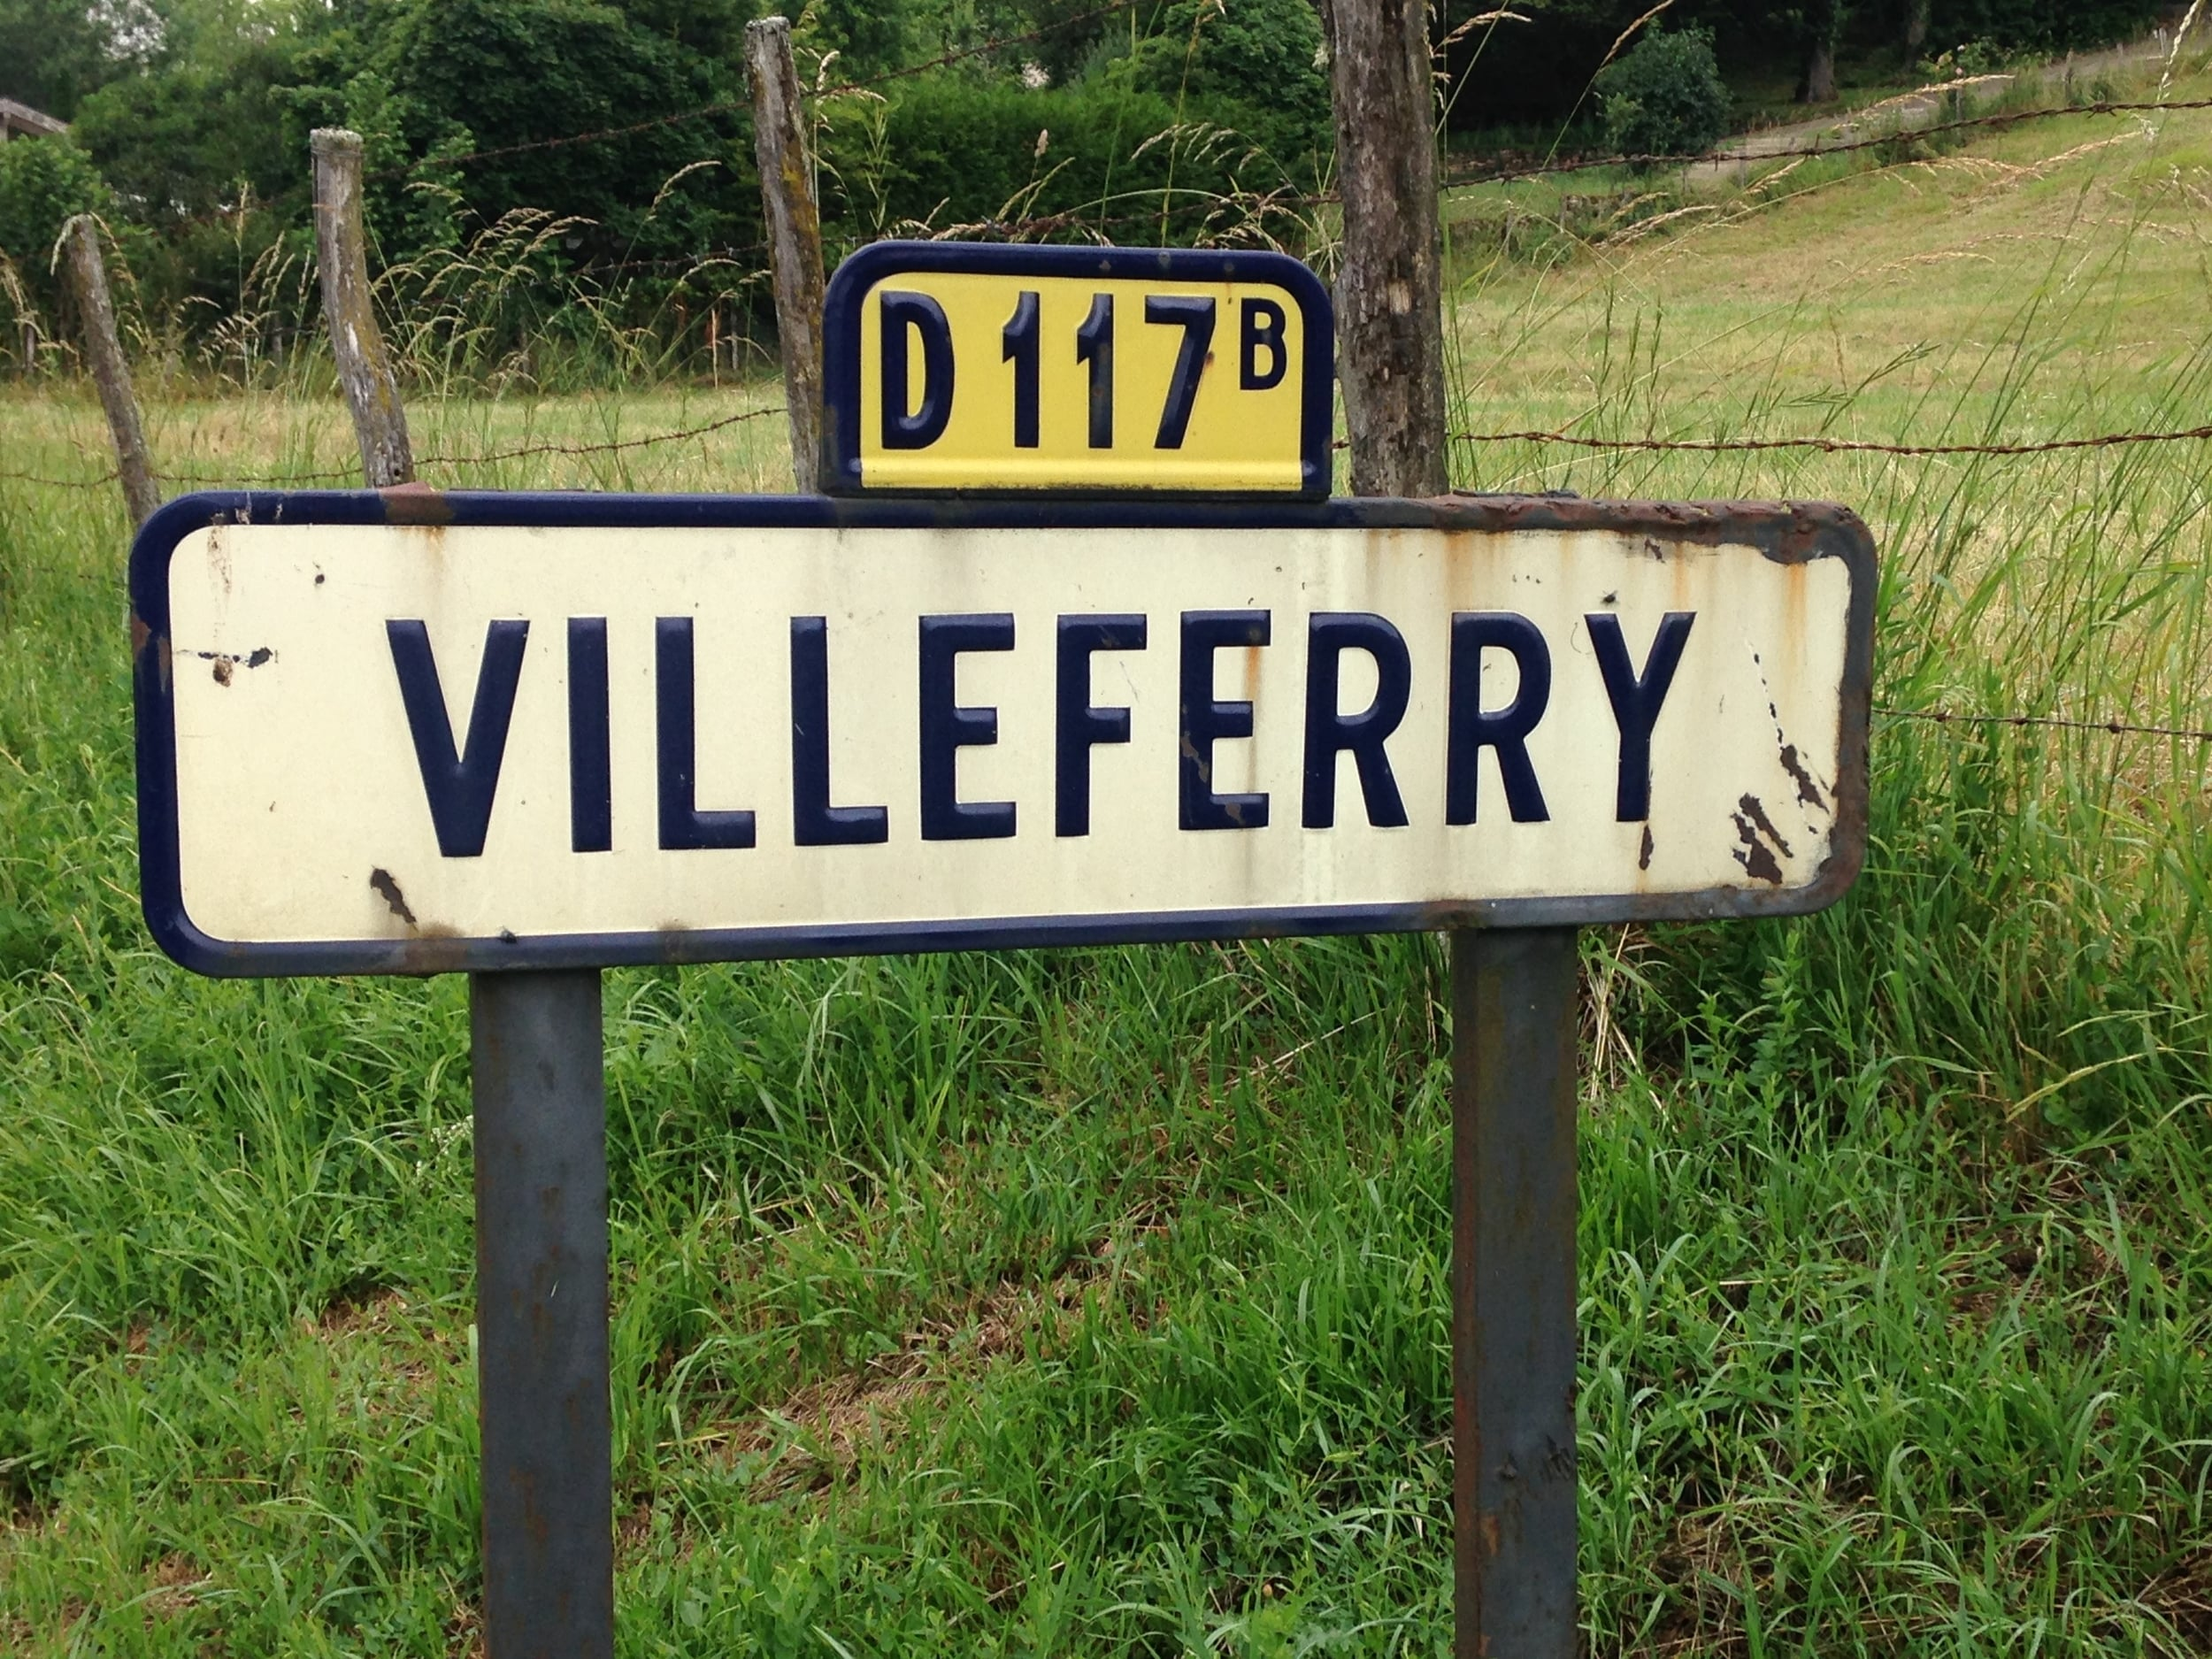 Villeferry:Where all your resolutions come true.